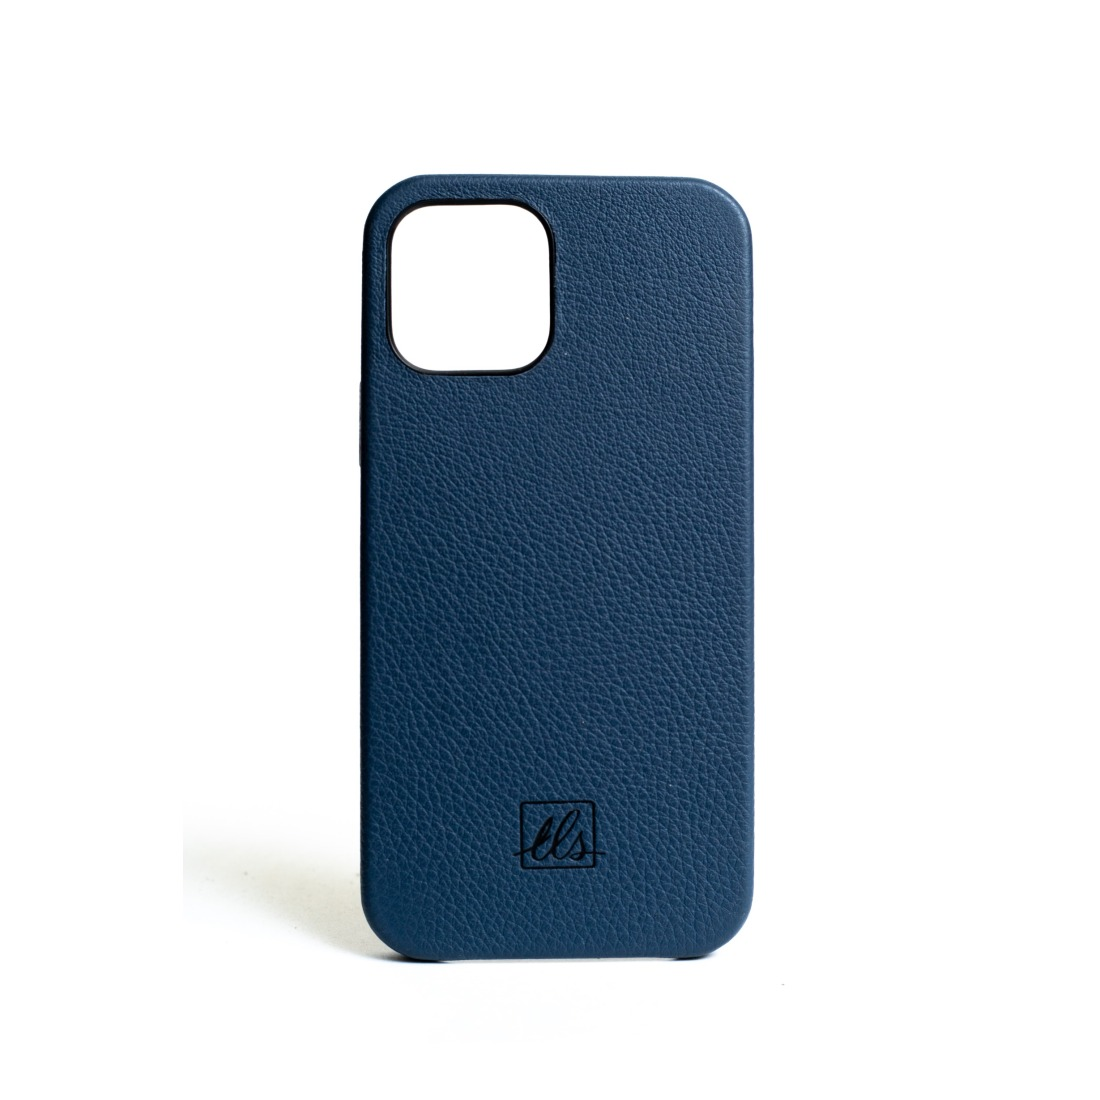 iphone MINI Hand Crafted Leather Case